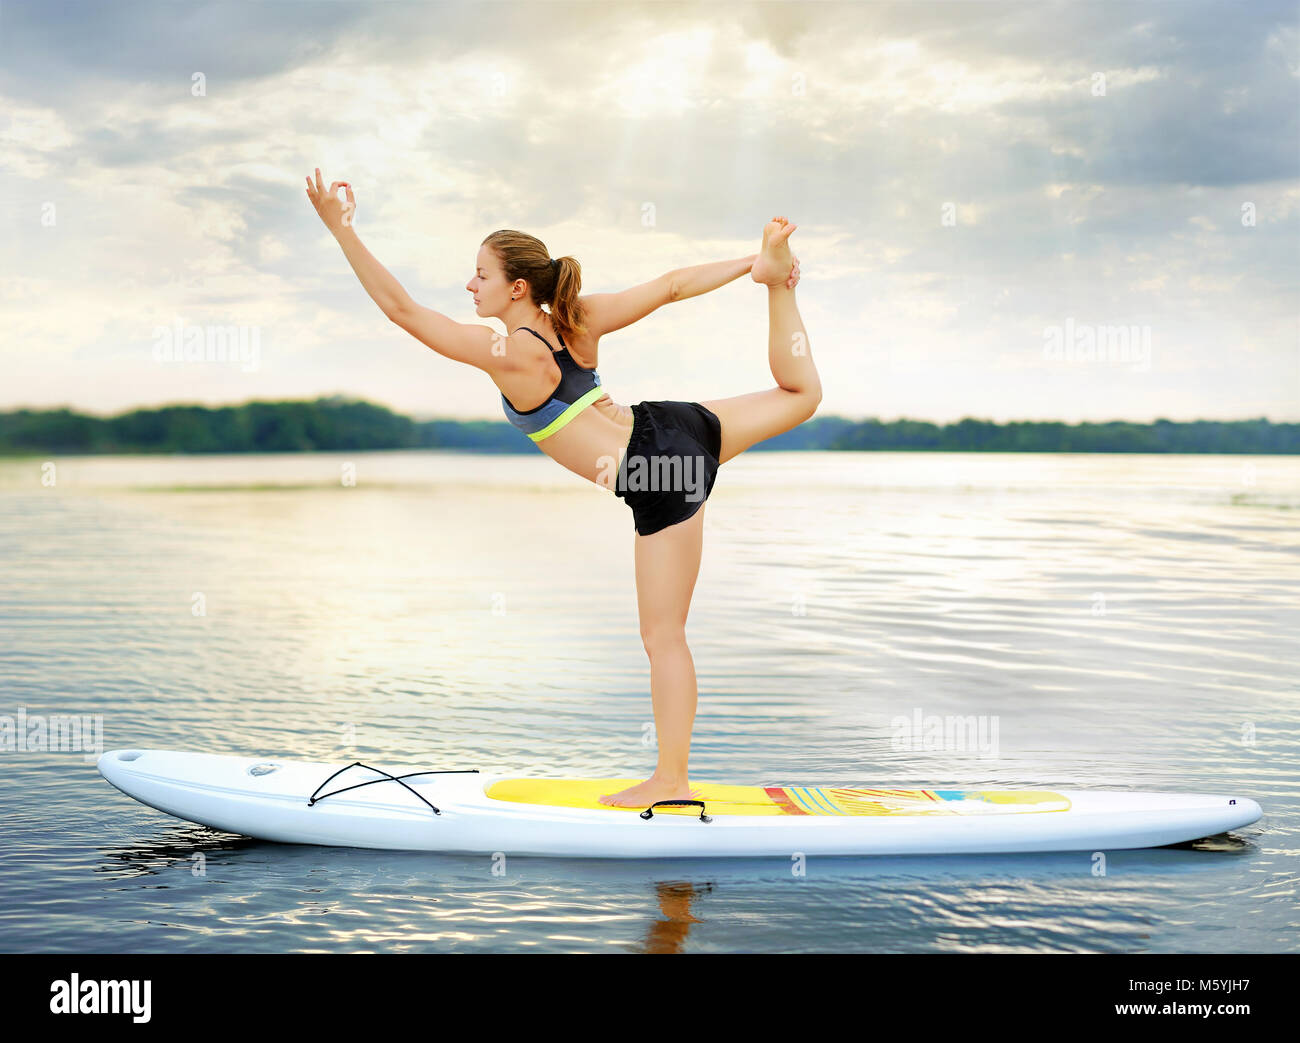 Woman practicing Lord of the Dance  yoga Pose balancing on paddle board - Stock Image